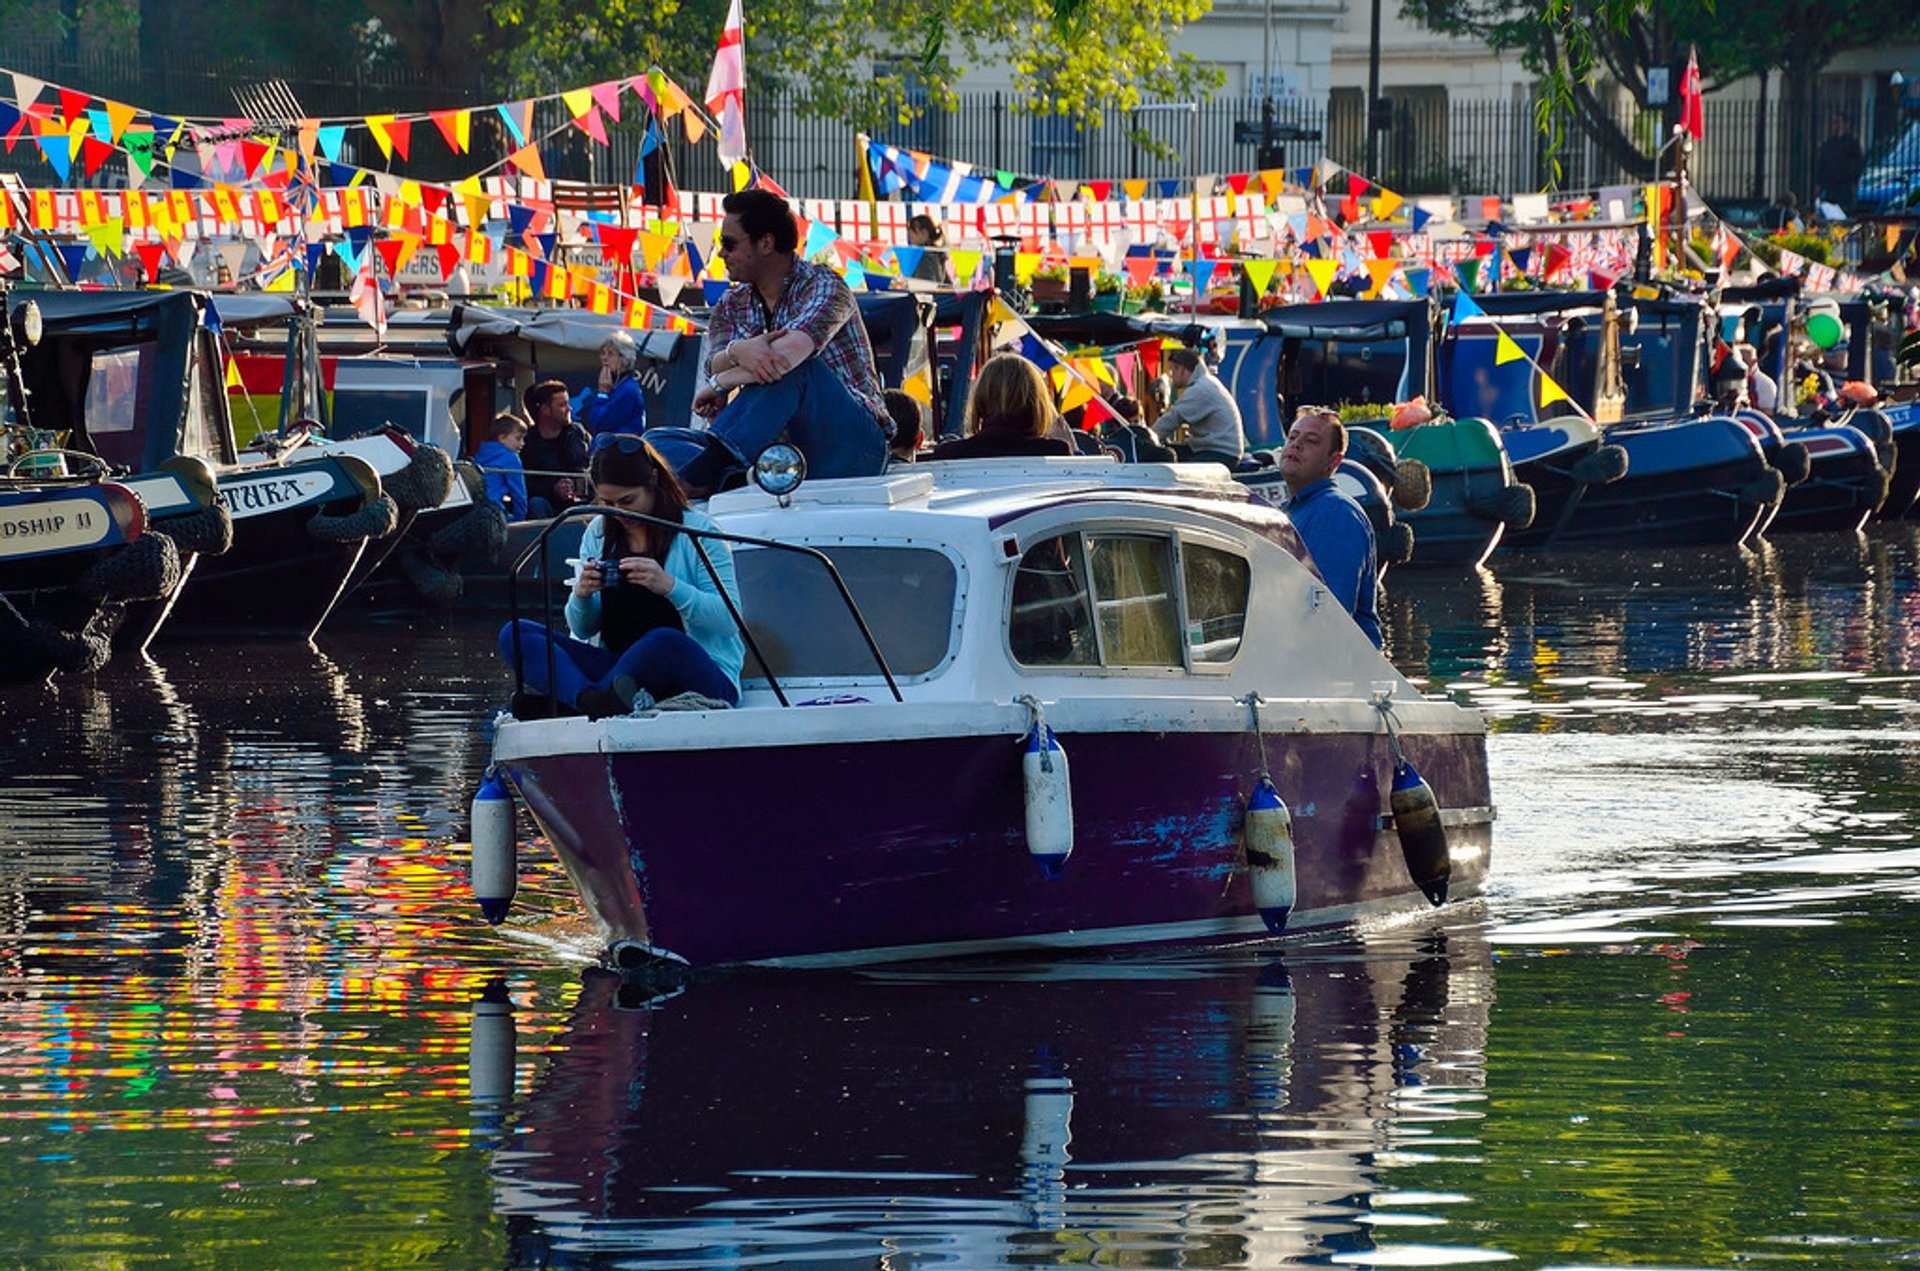 Best time for Canalway Cavalcade in London 2020